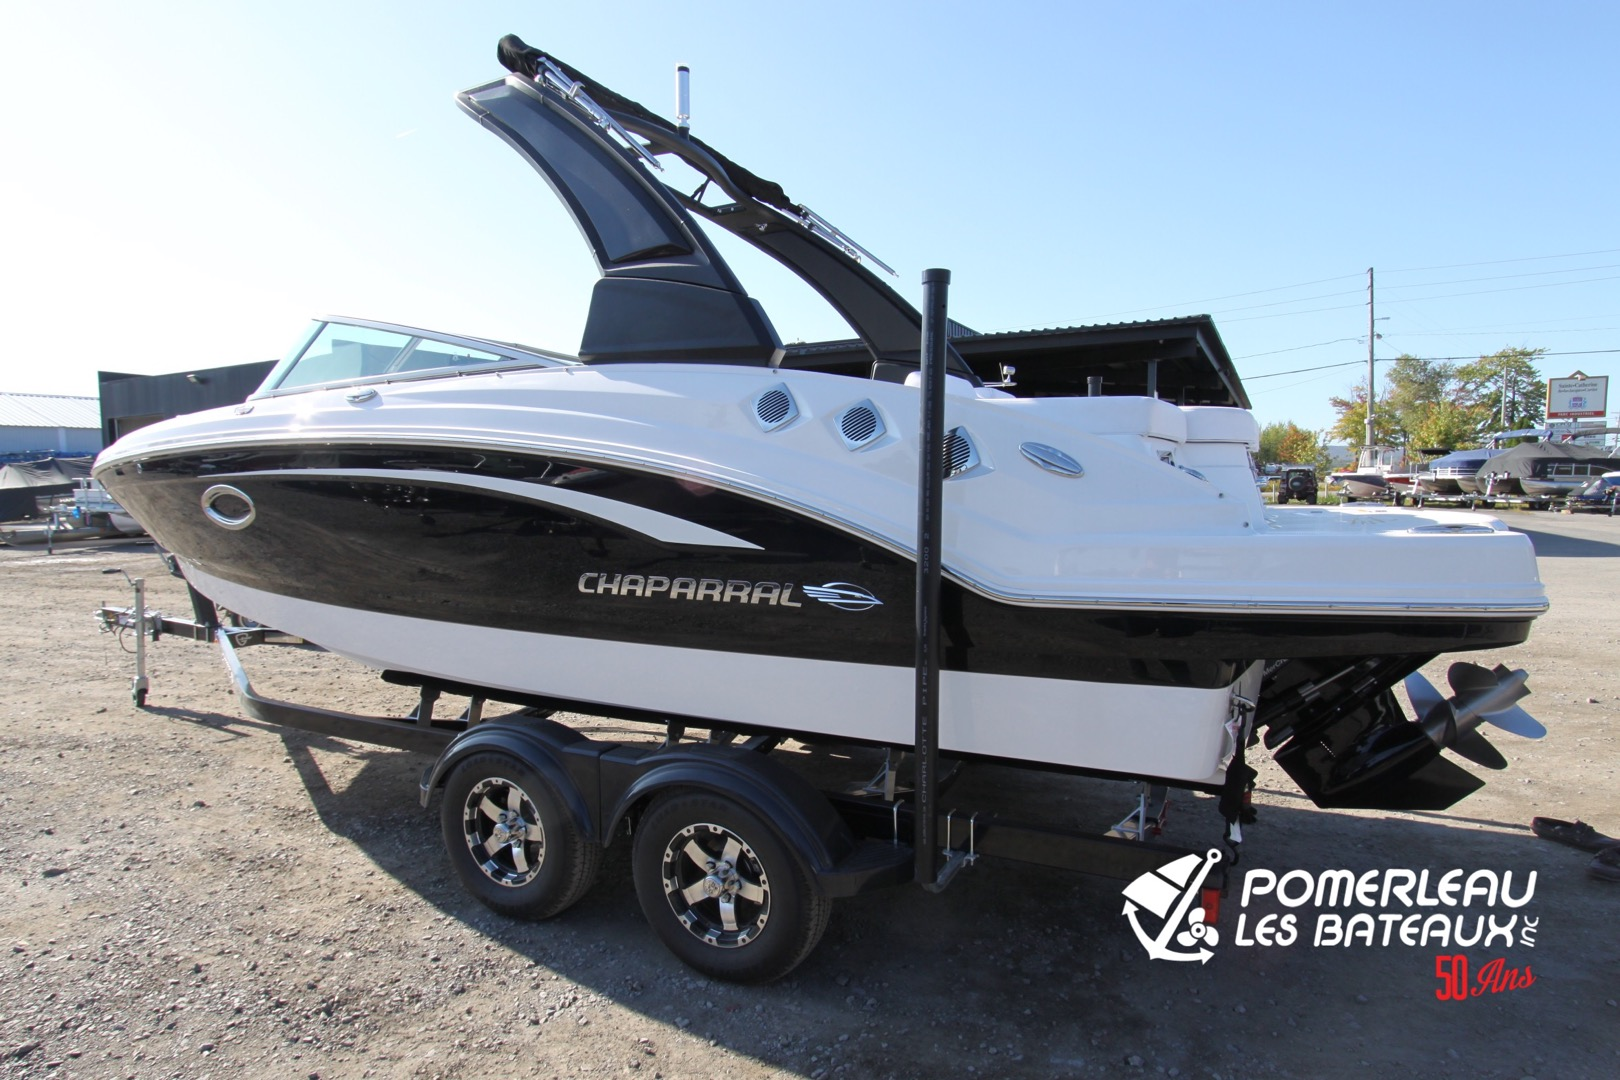 Chaparral 246 SSI - IMG_2119